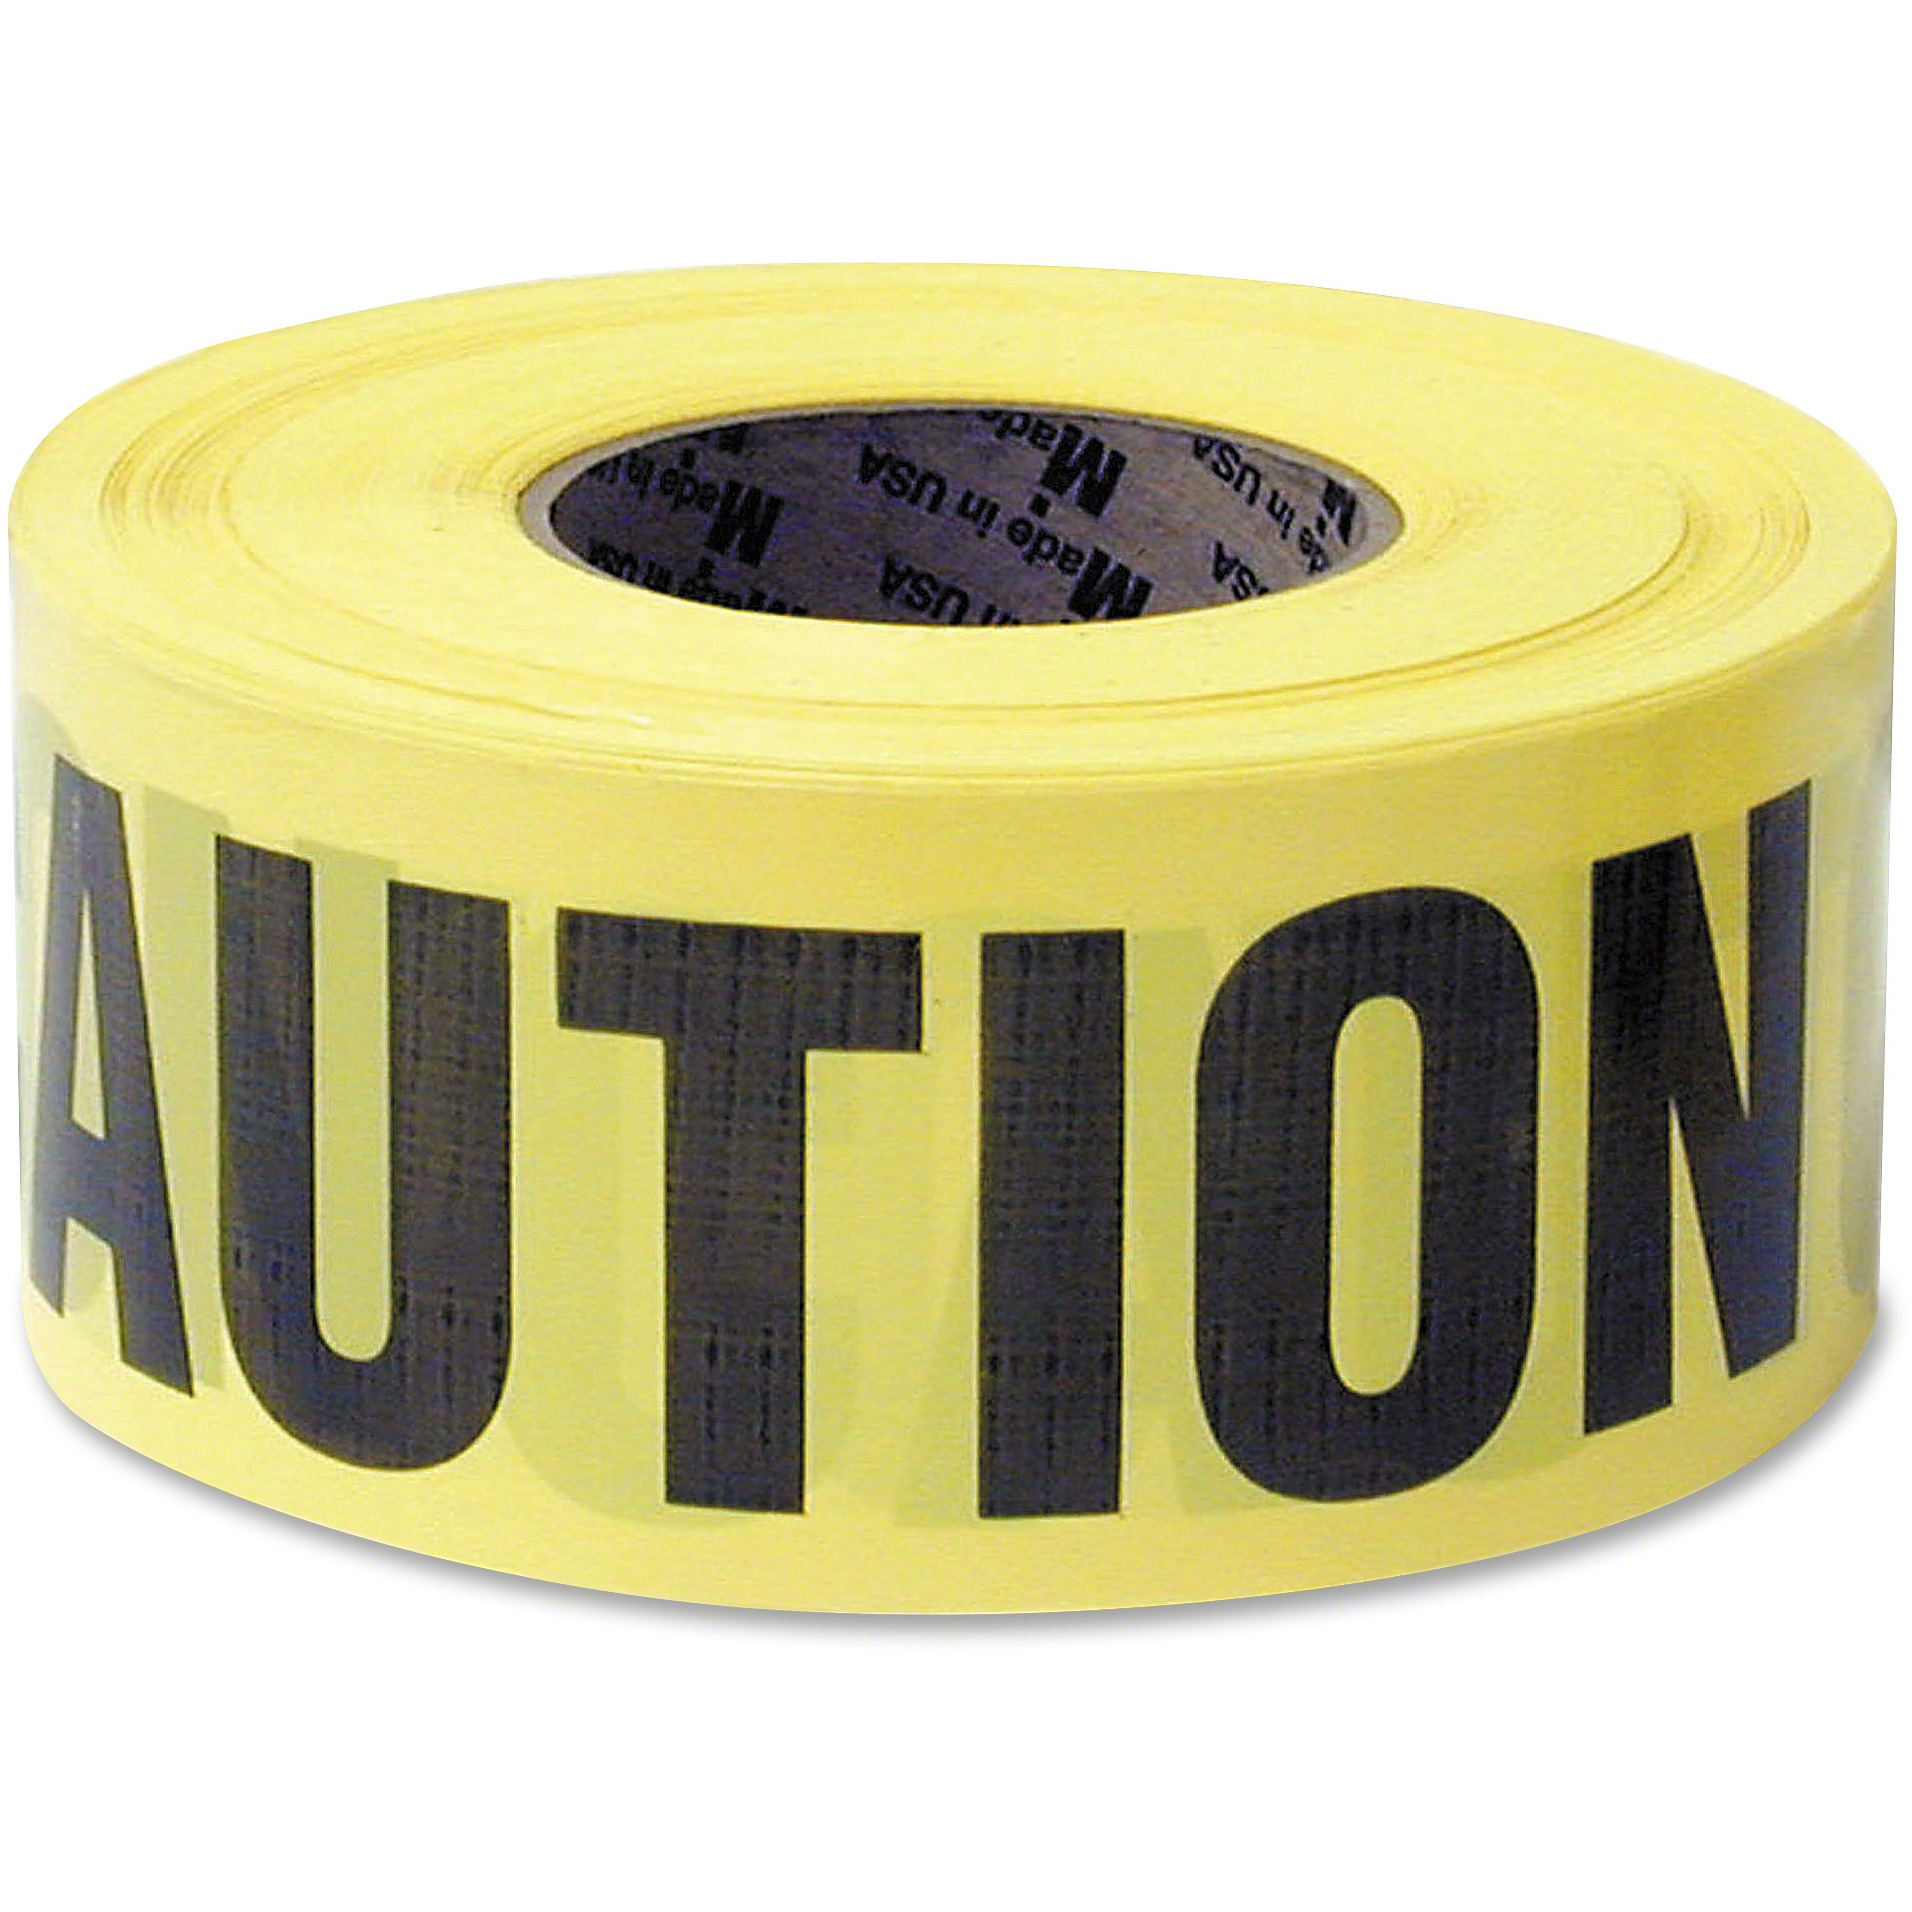 Great Neck, GNS10379, Yellow Caution Tape, 1 Each, Yellow